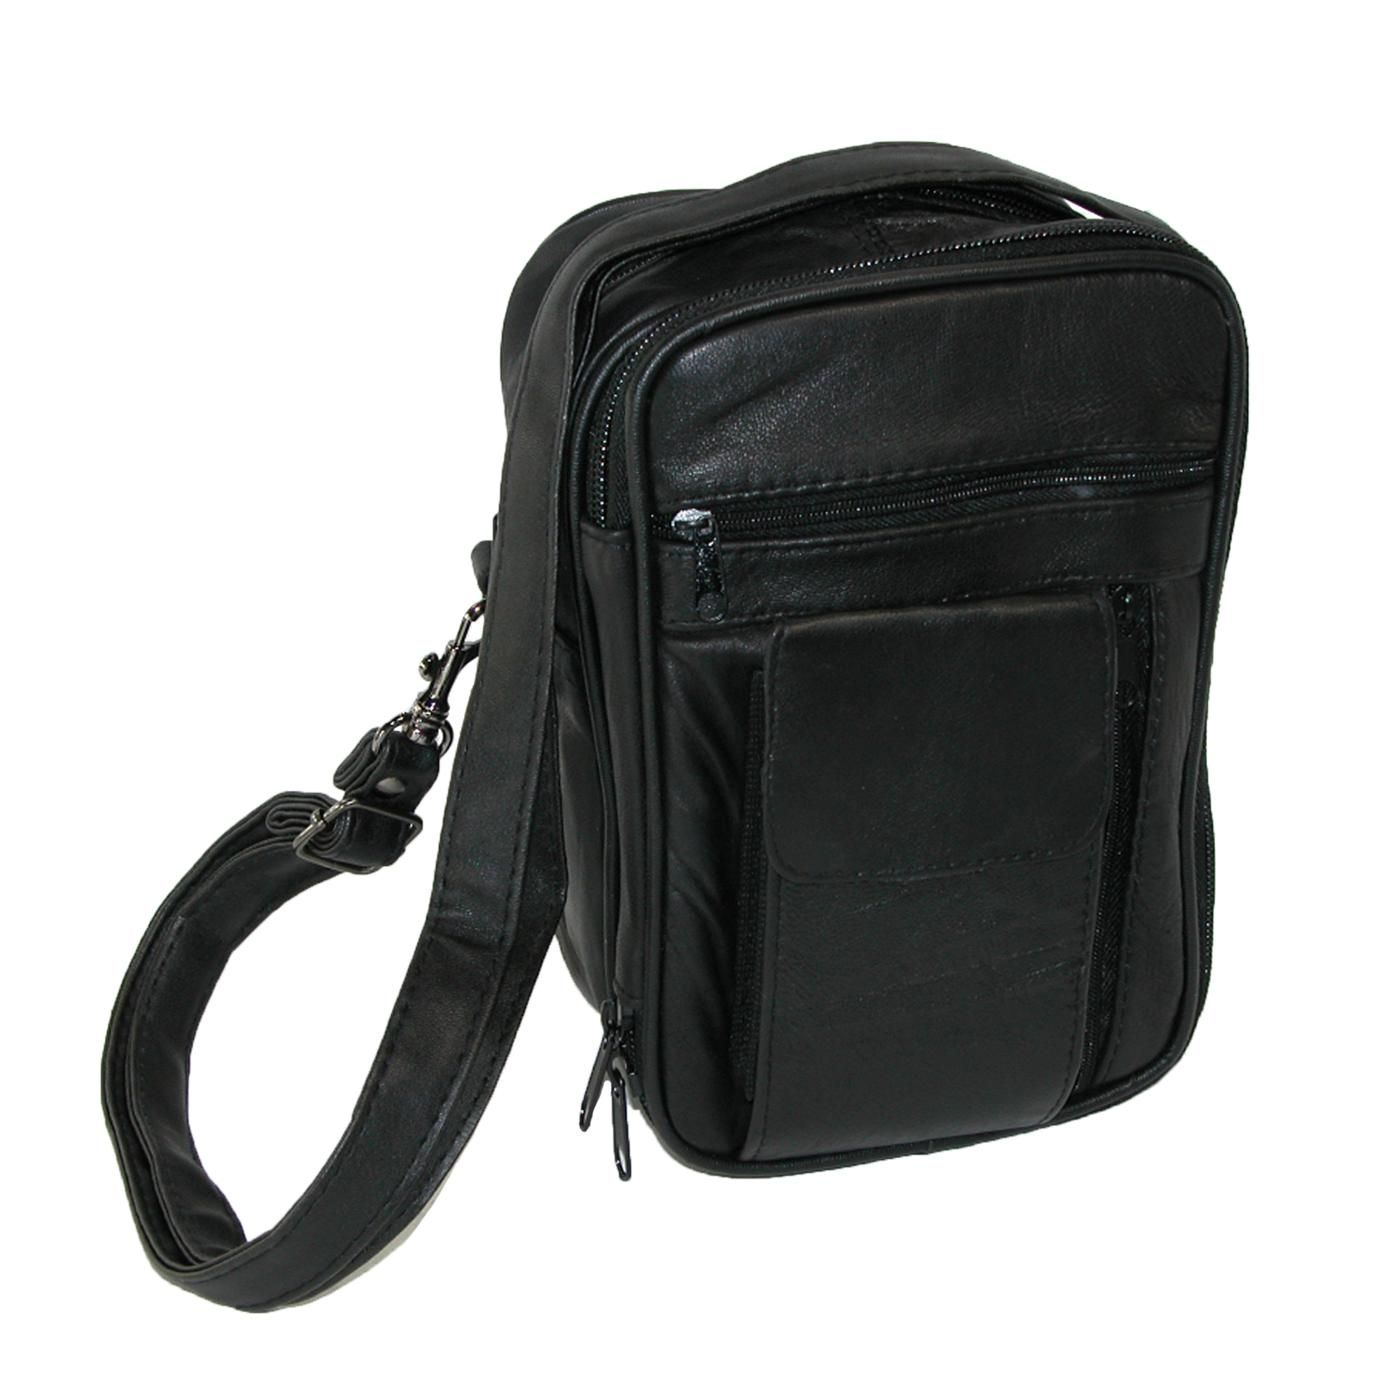 bca82f8a6b76 All-in-one man bag can store your valuables, cell phone and business ...